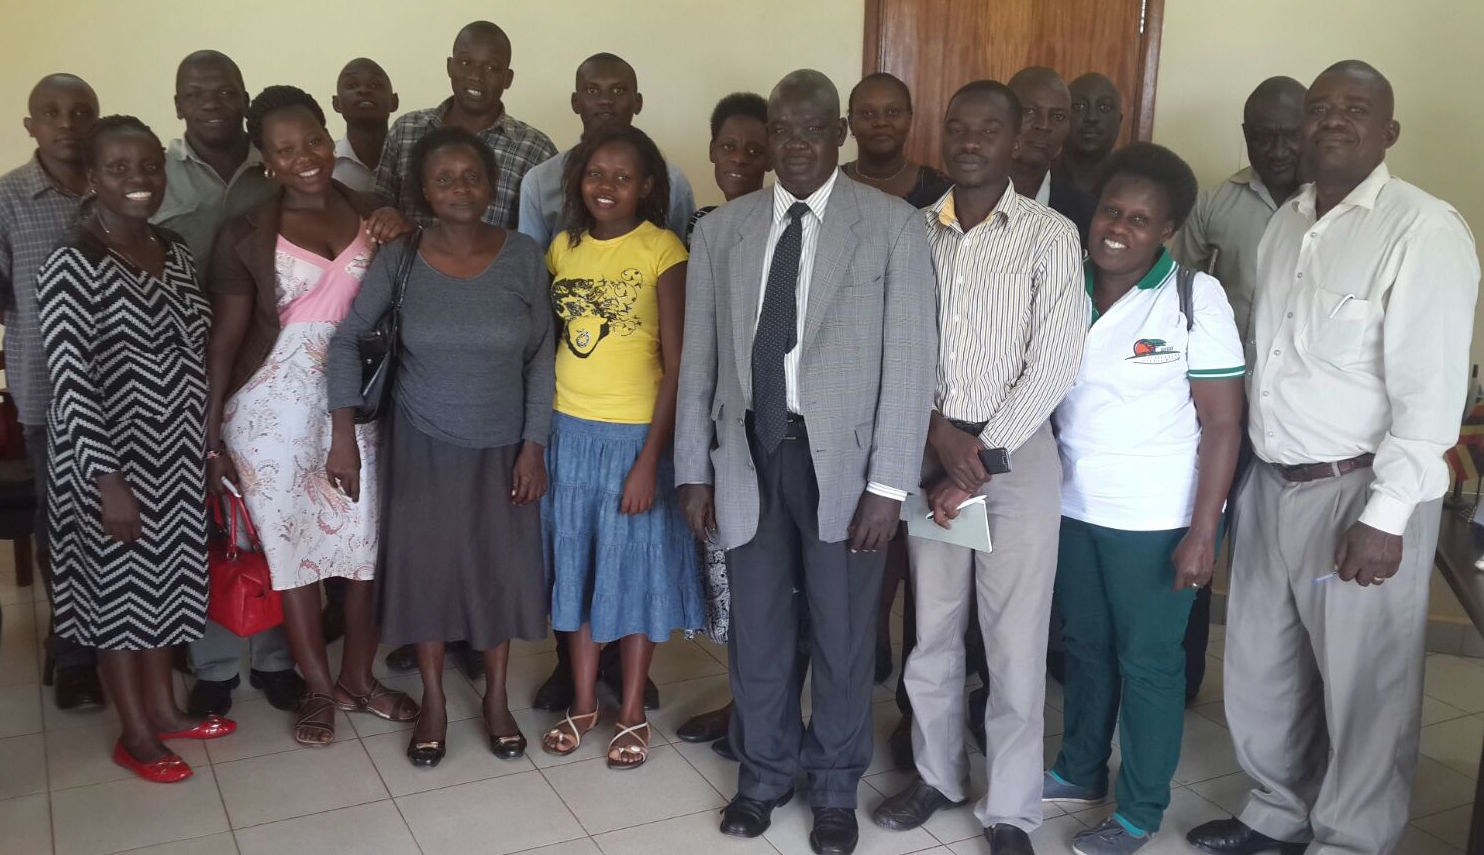 CTCA & RAN team with Hoima District Leaders at the district Headquarters